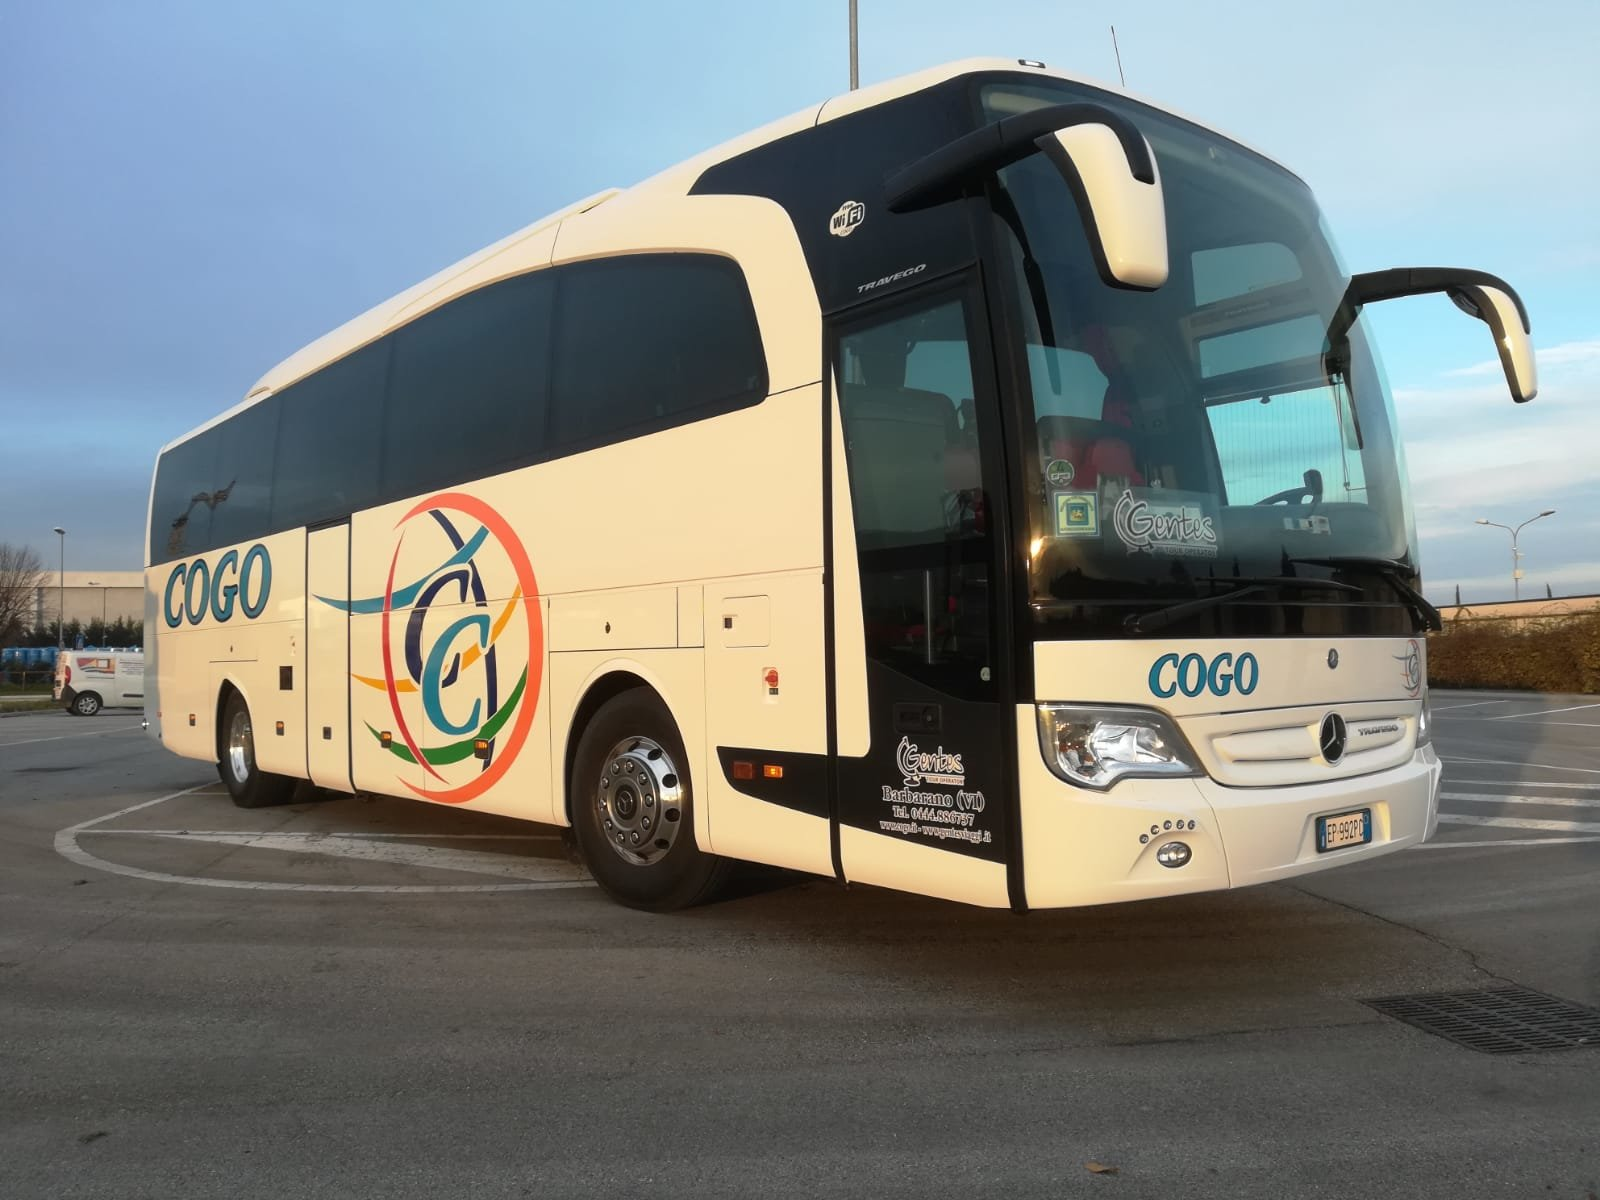 Mercedes Travego RHD